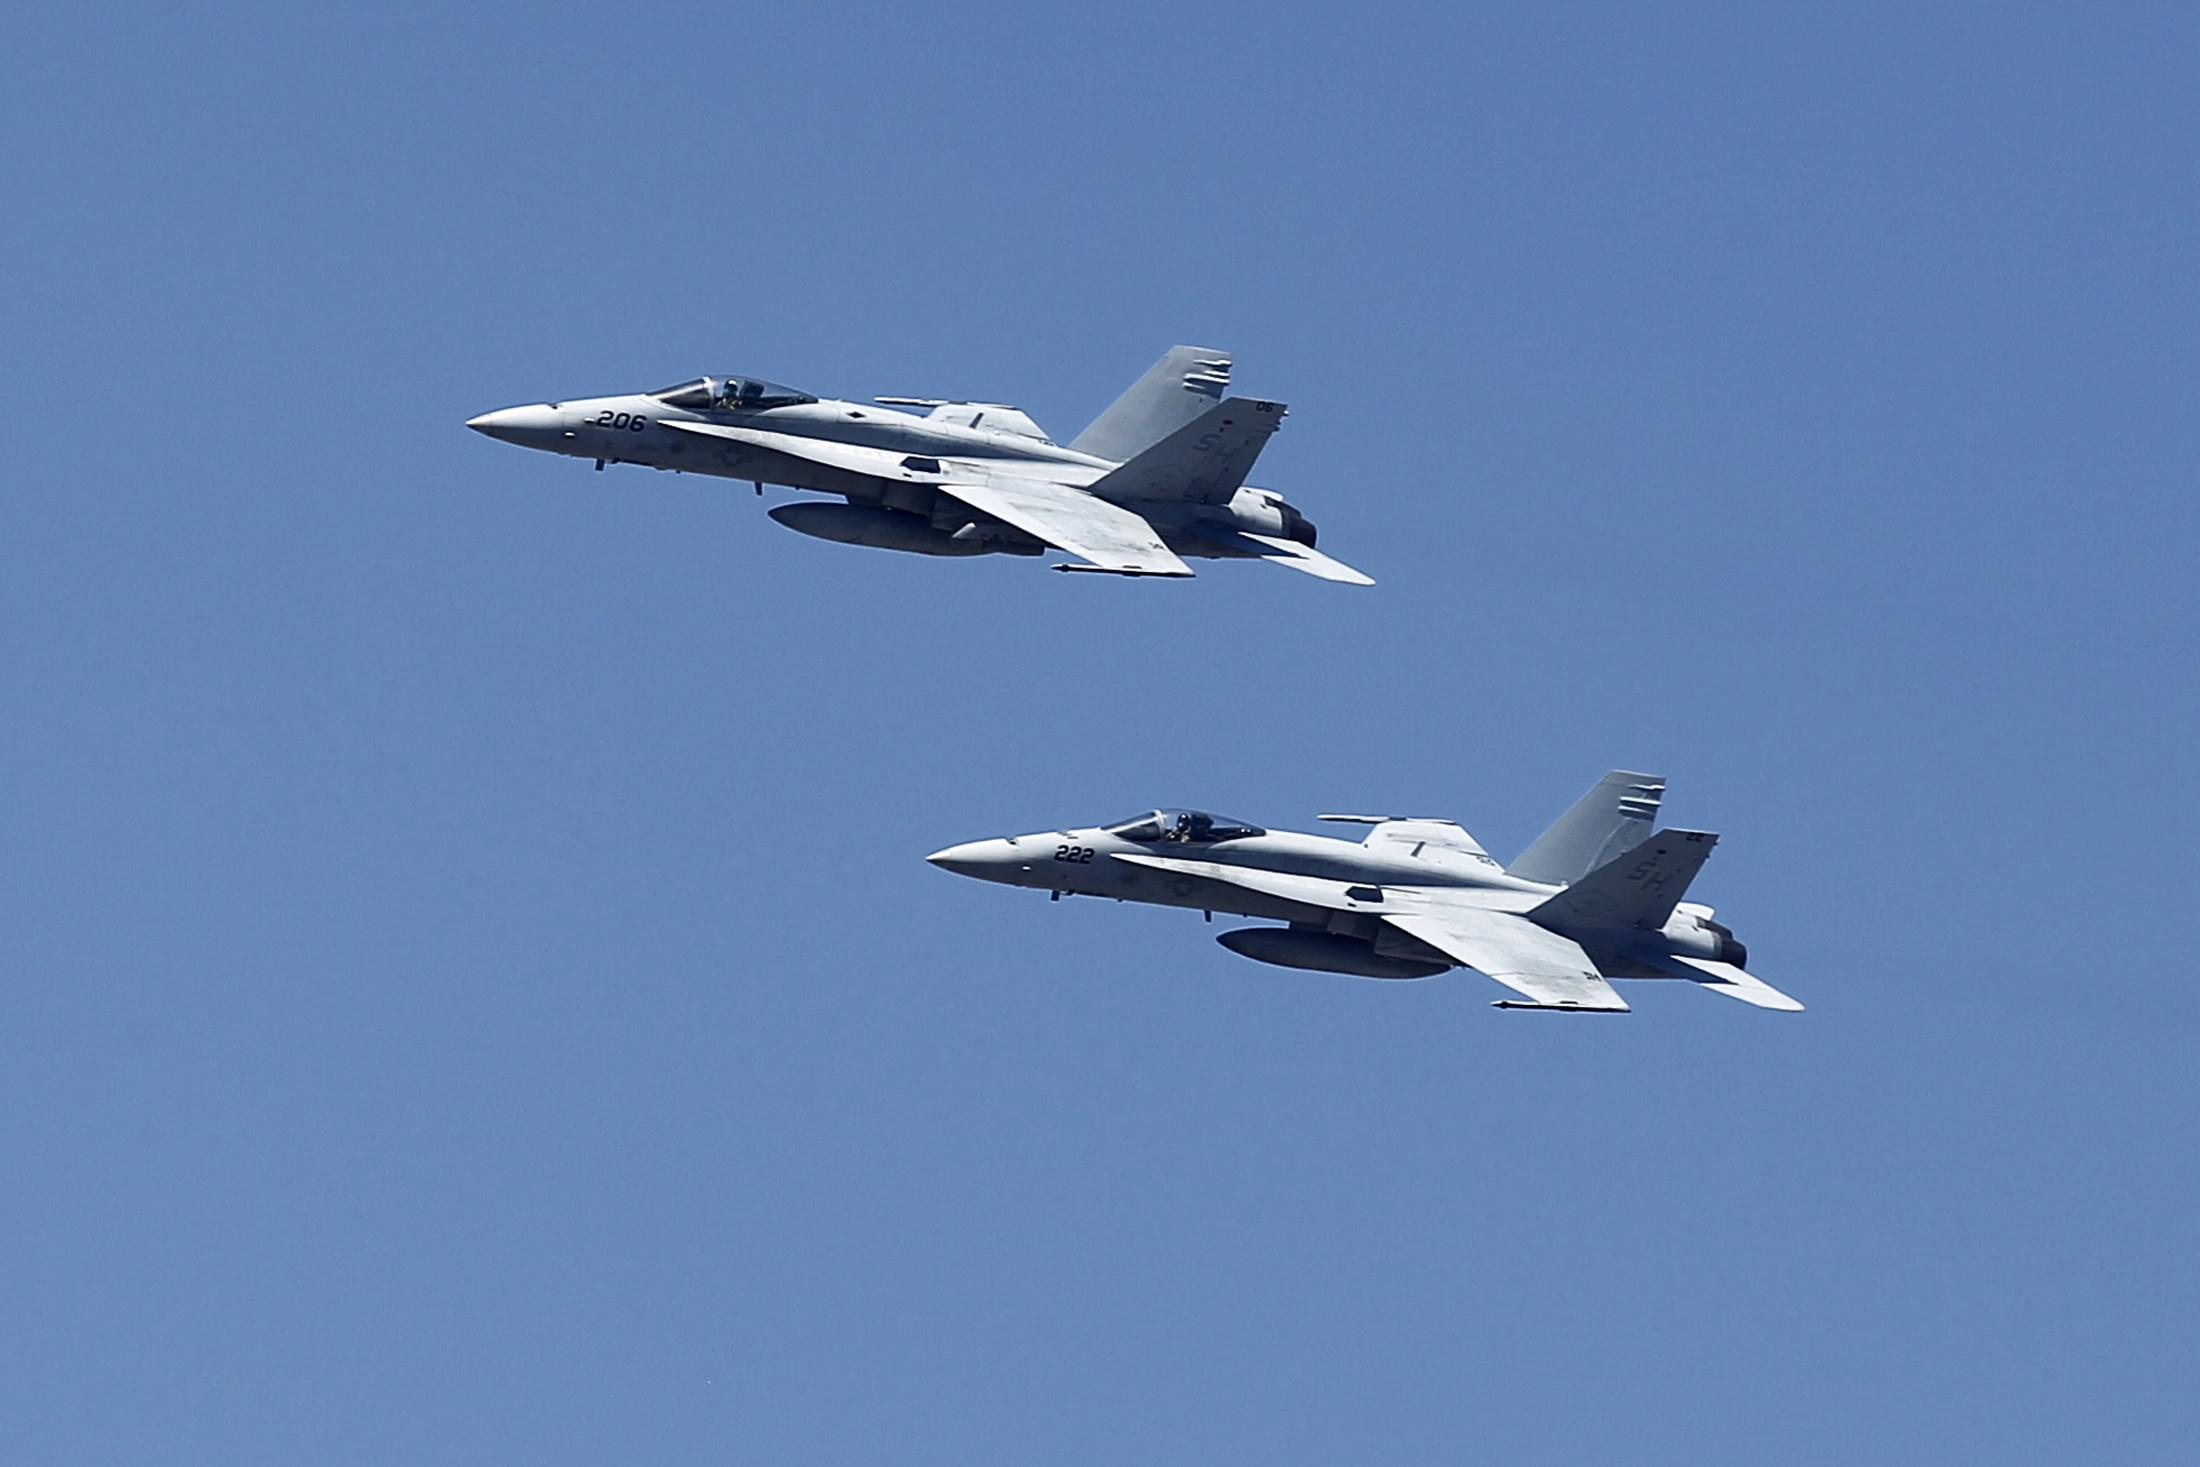 F-18 Fighter Jets